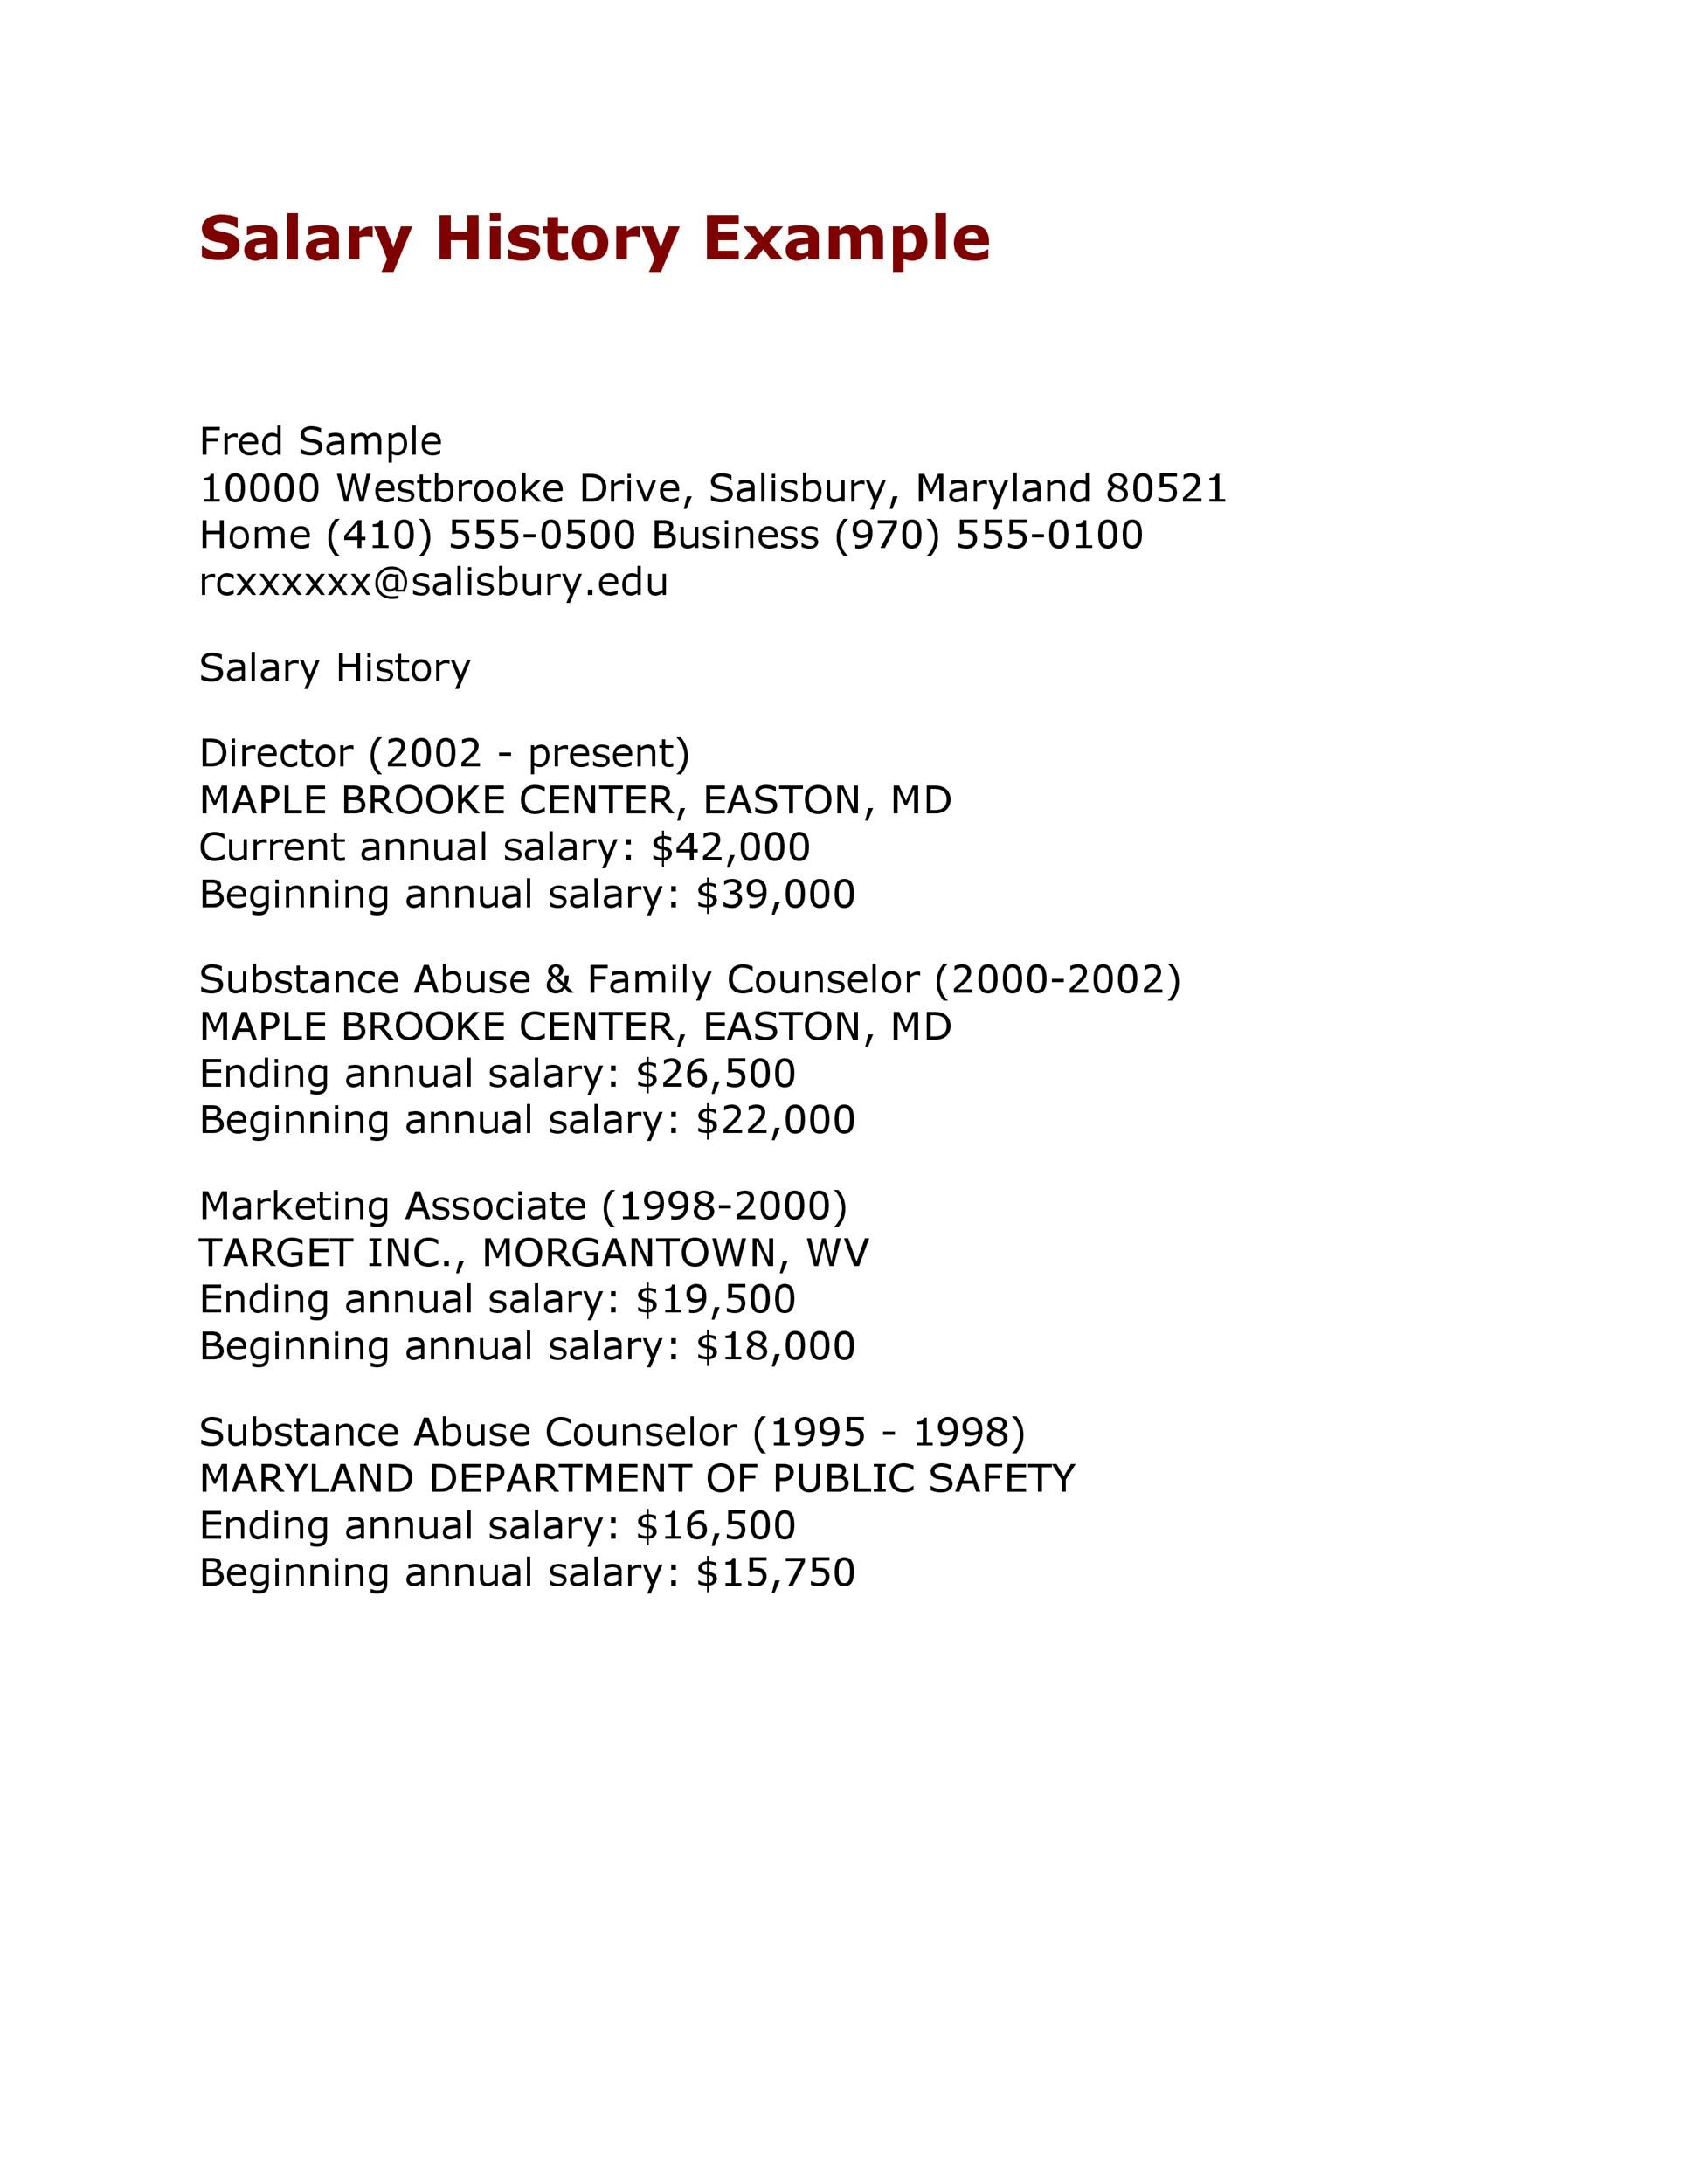 Salary-History-Template-02 Salary History Format Resume on how put my, where do you put, where put desired, how write expected, history template, how attach expected, what type for, templates that include, hours included,